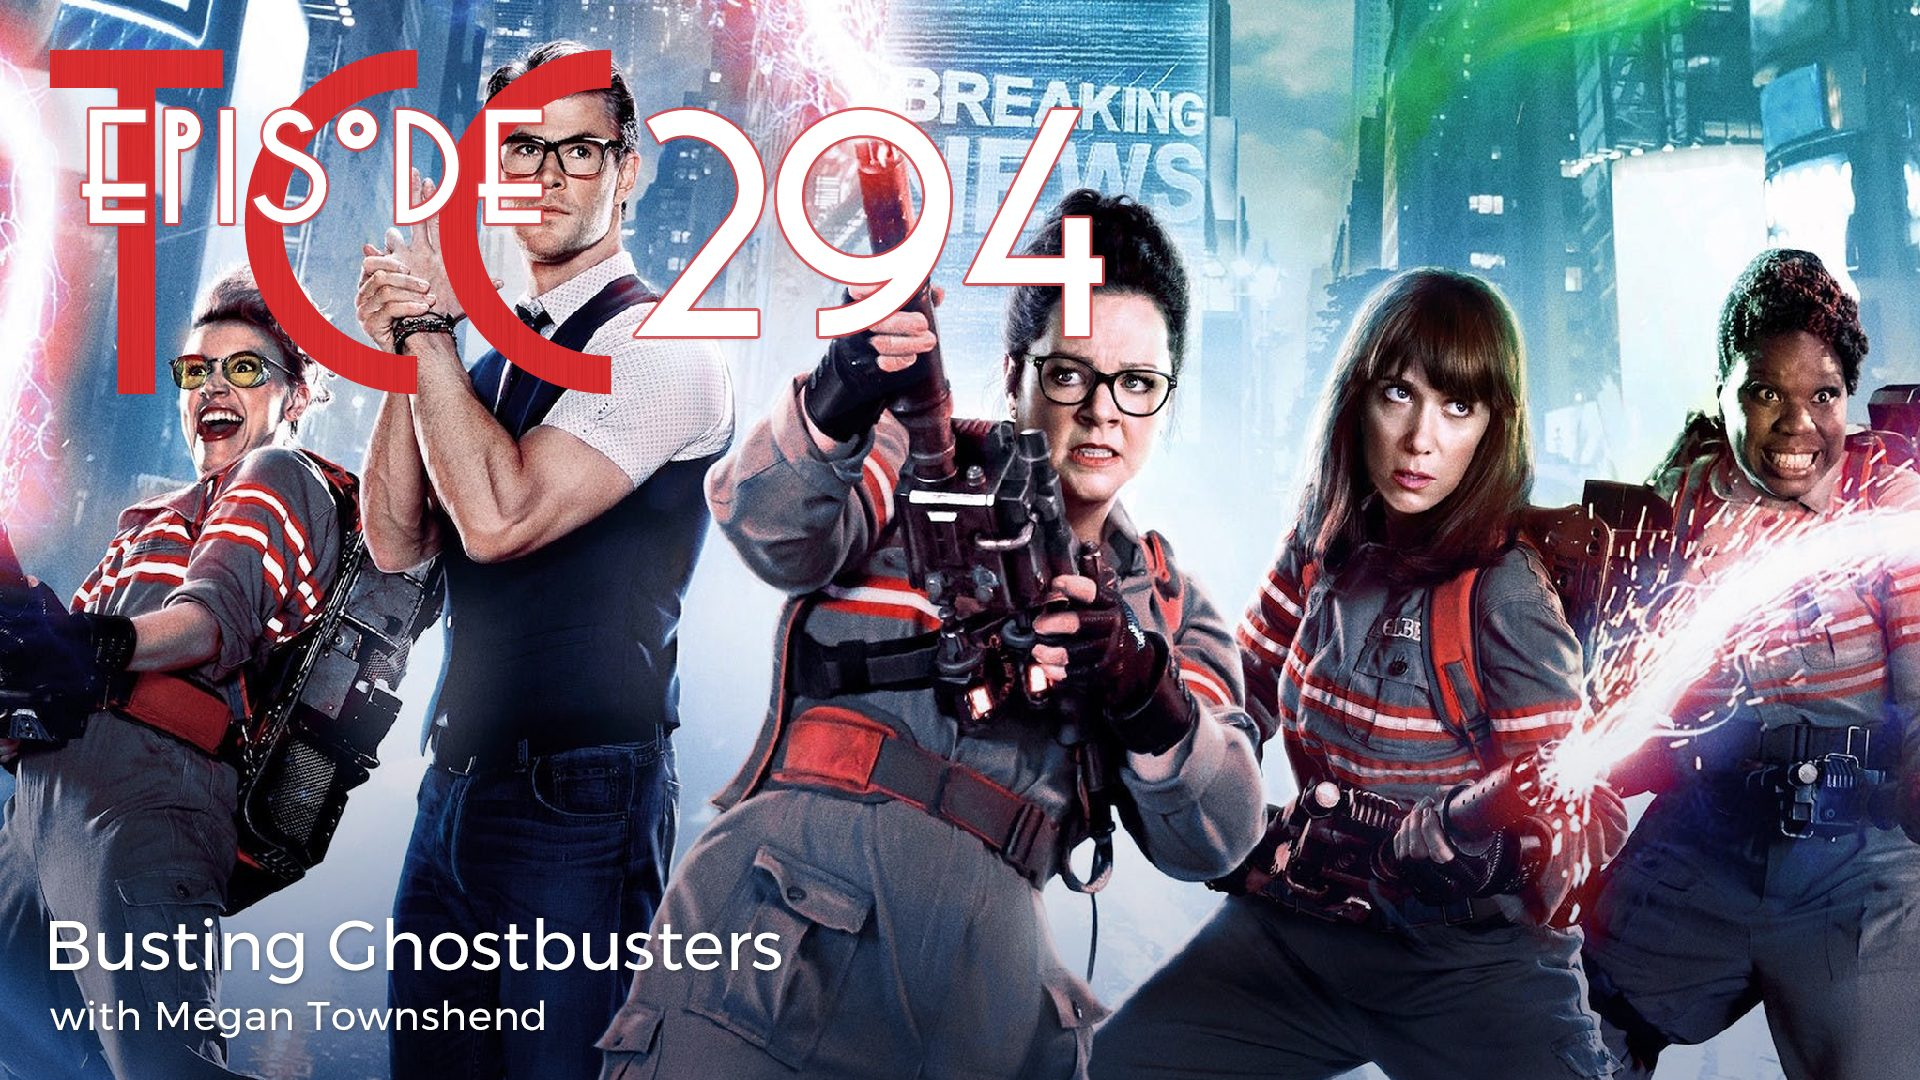 The Citadel Cafe 294: Busting Ghostbusters